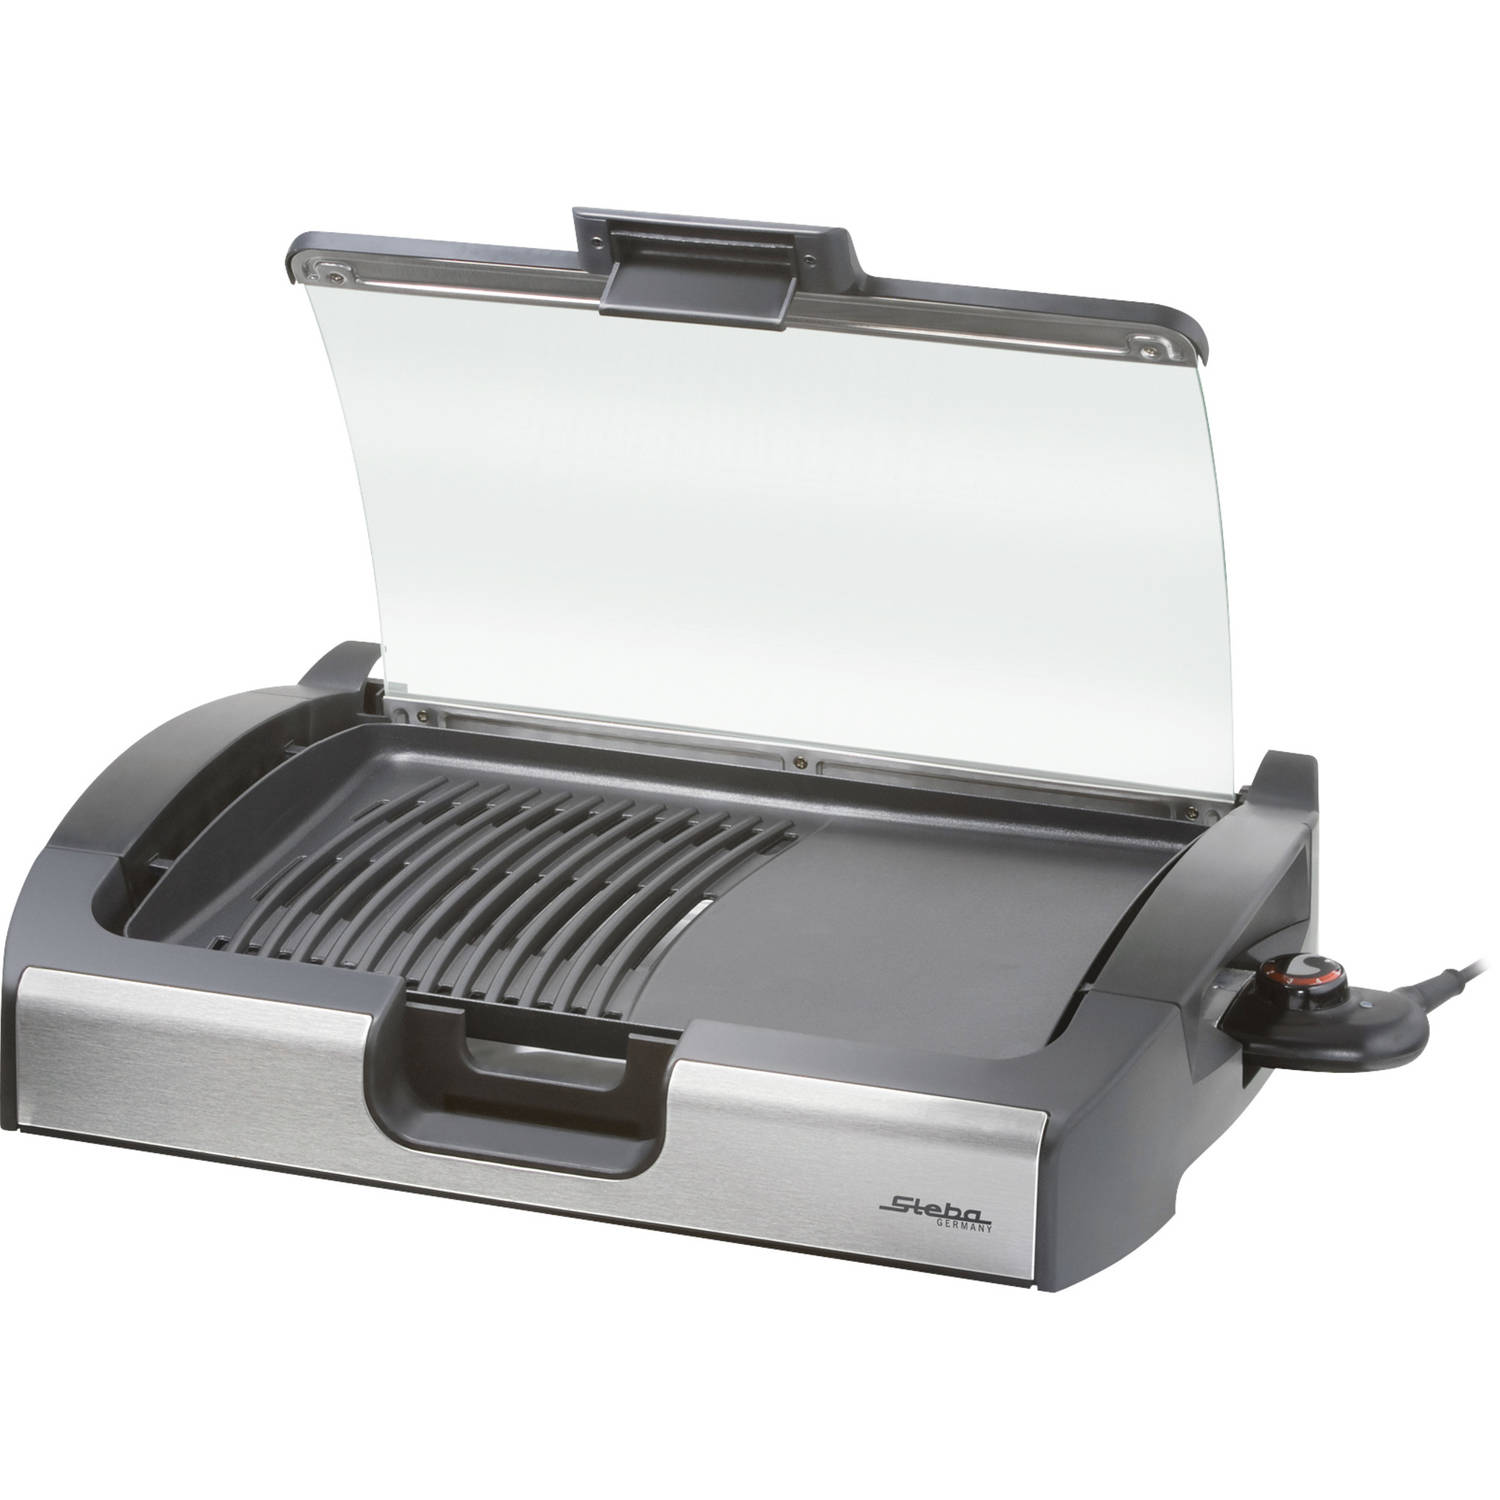 Barbecue Grill VG 200